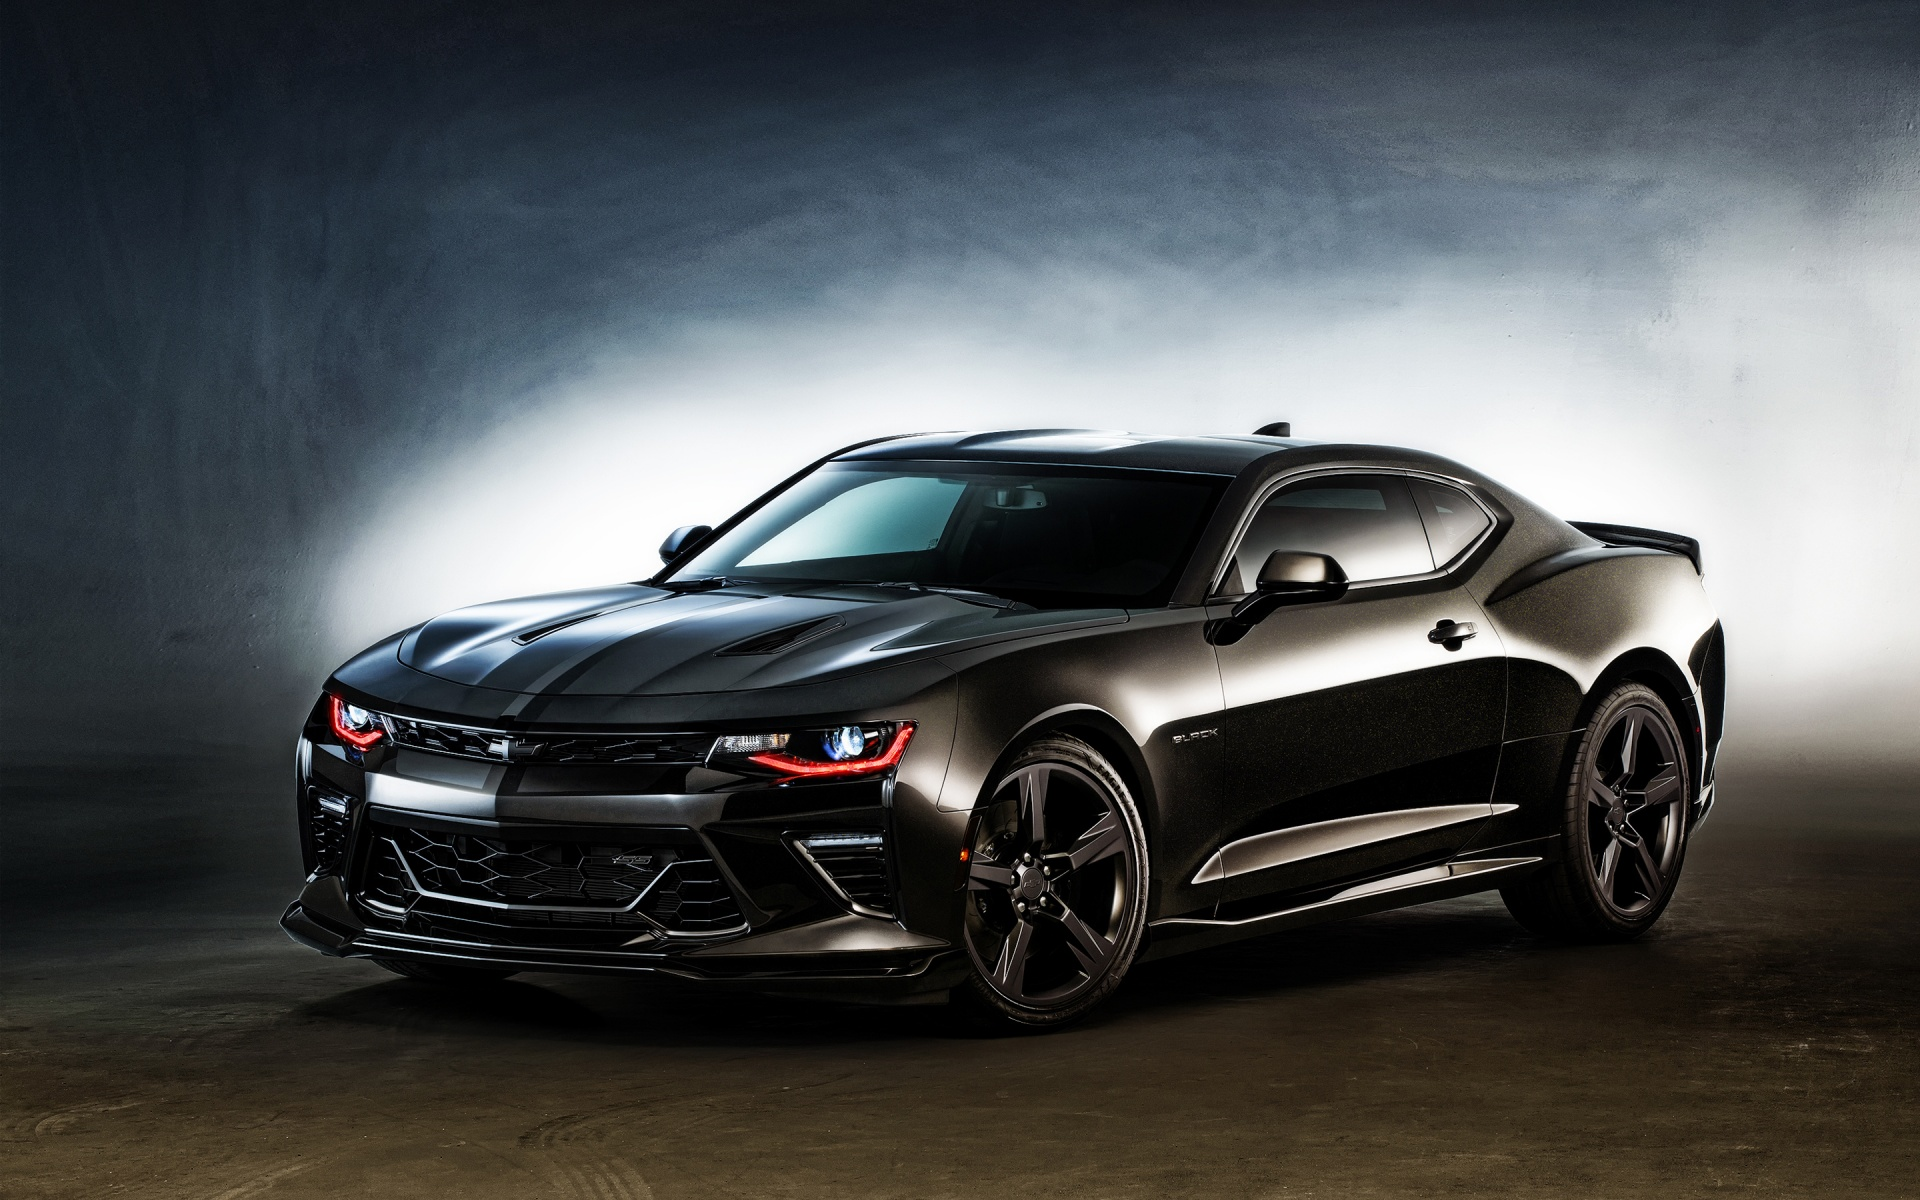 2016 Chevrolet Camaro Black Wallpaper HD Car Wallpapers 1920x1200